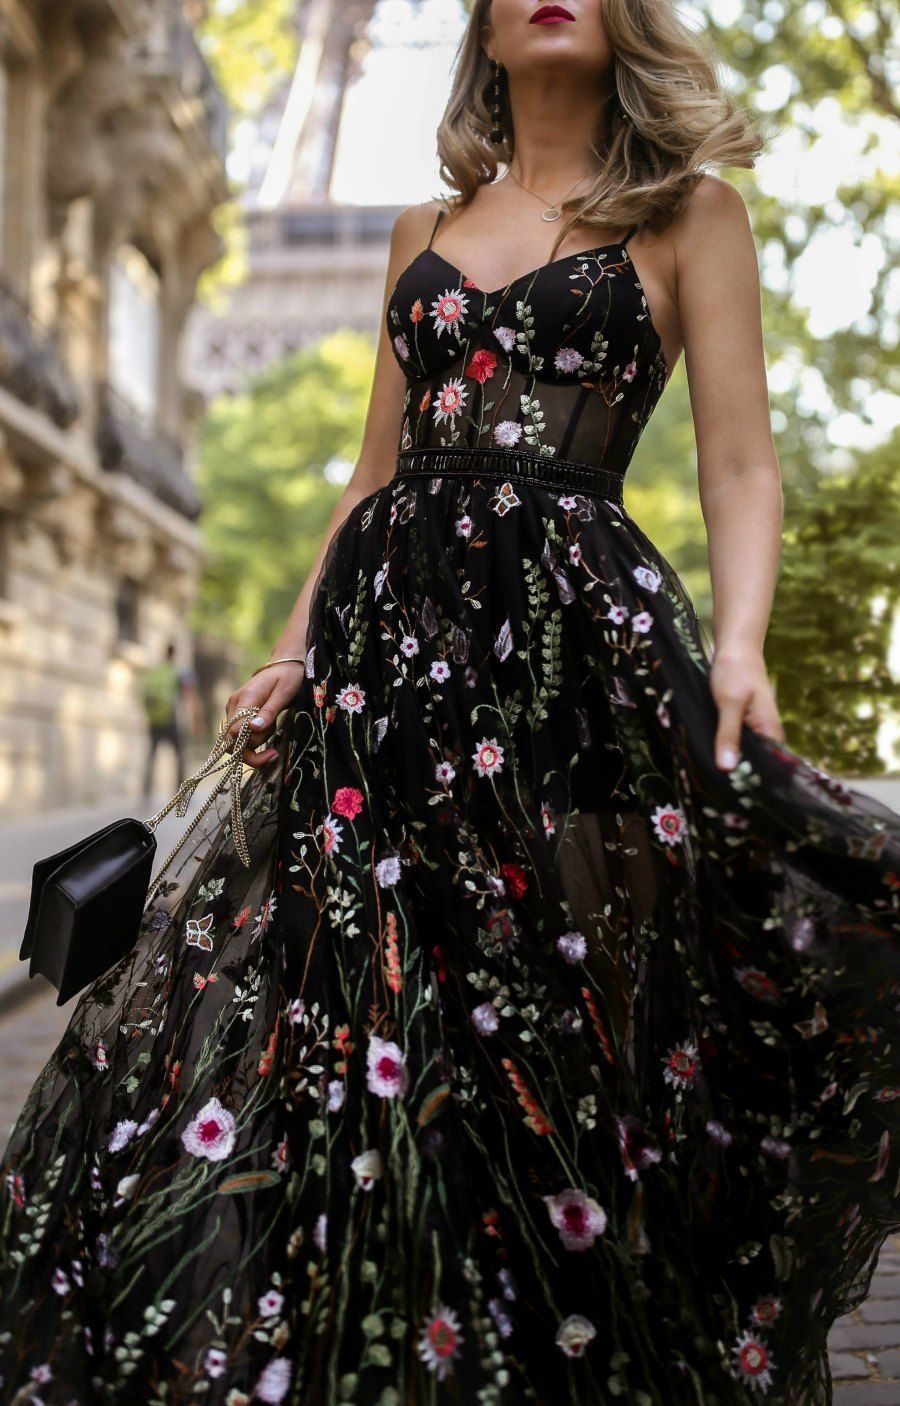 What To Wear To A Black Tie Wedding Long Black Floral Embellished Spaghetti Strap Dress Wi Black Tie Event Dresses Floral Dresses Long Black Lace Prom Dress [ 1406 x 900 Pixel ]